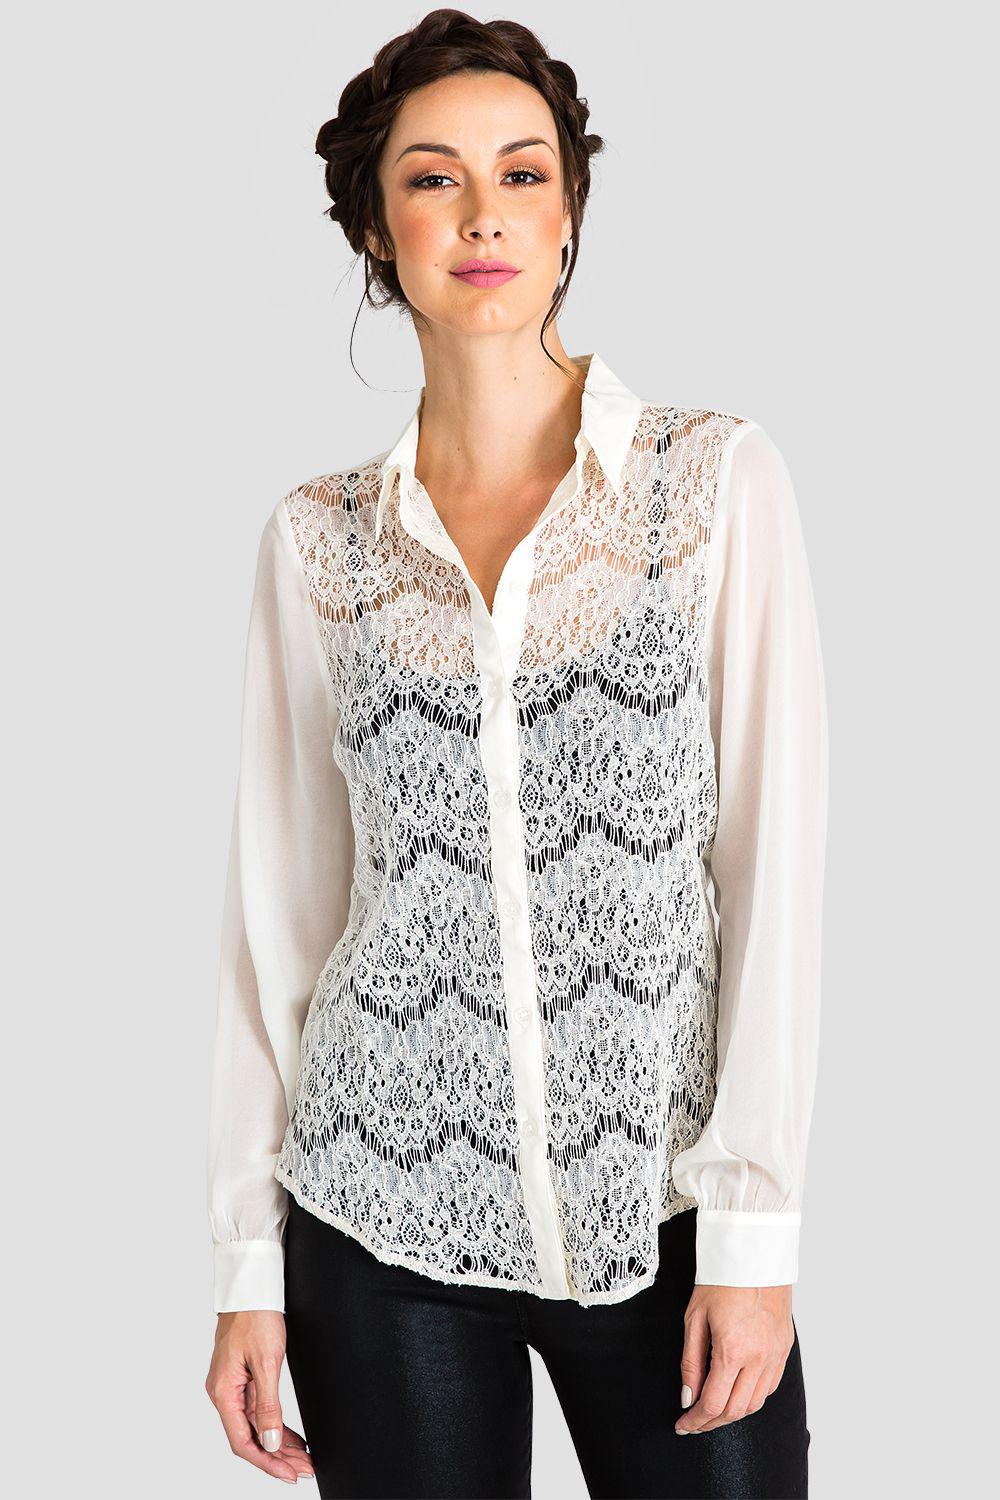 Coco Ivory Lace Collared Shirt